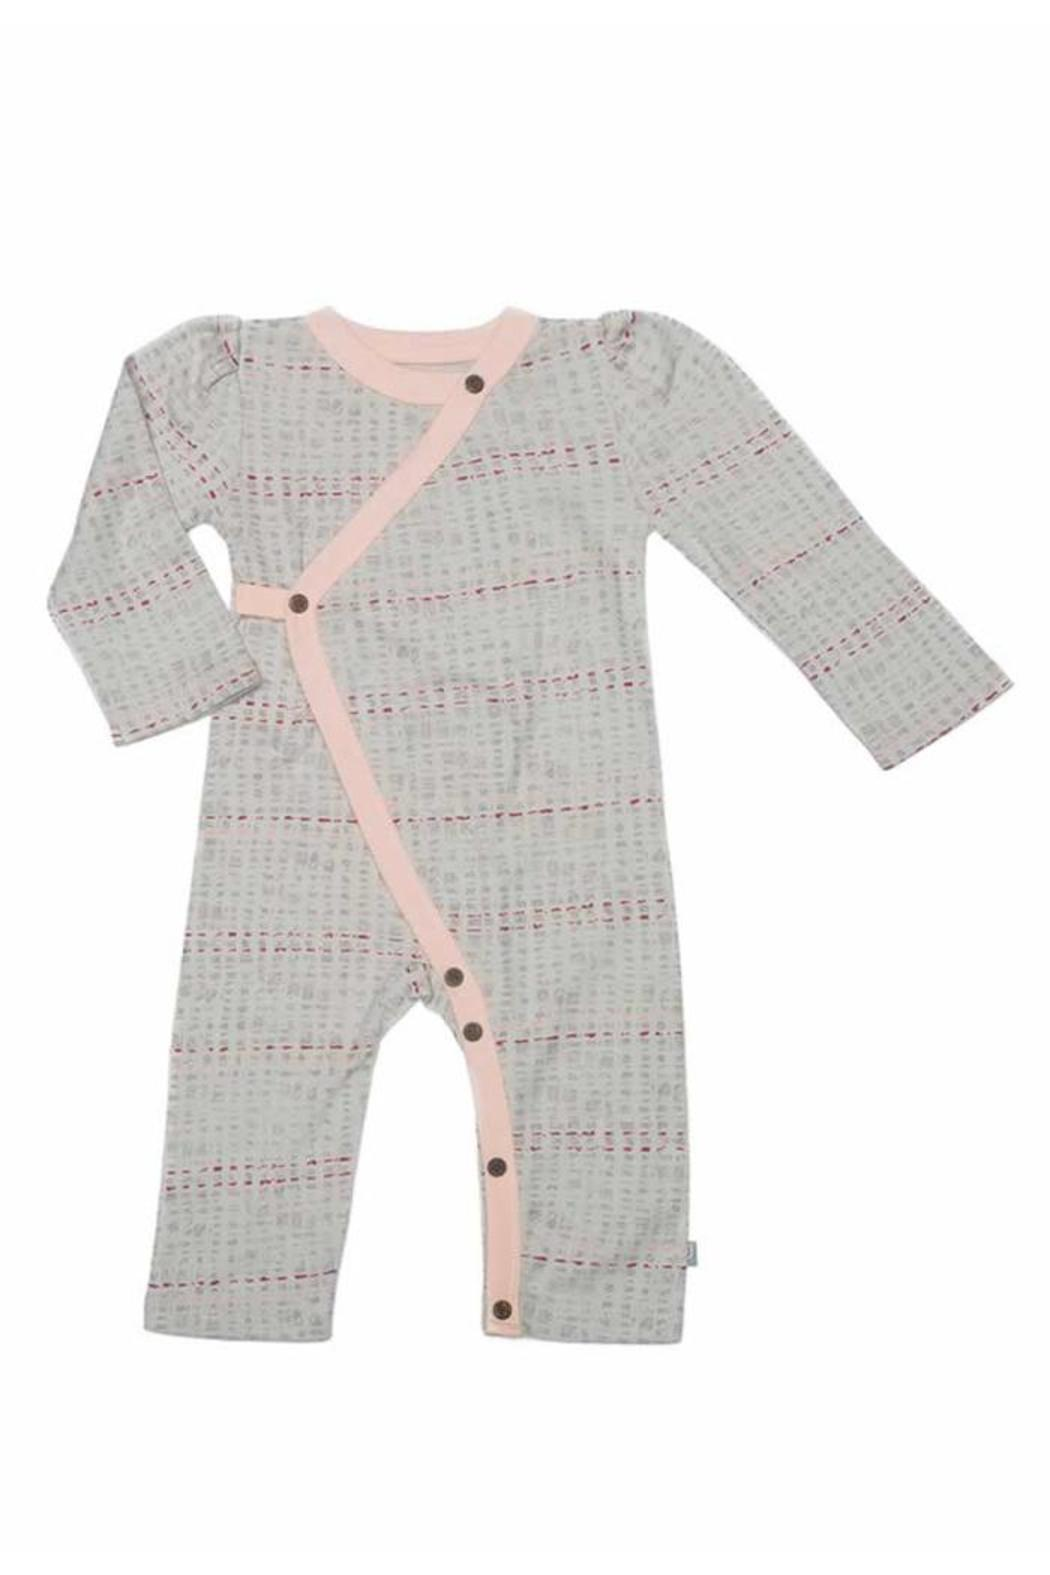 Finn+Emma Scribble Print Coverall - Crunch Natural Parenting is where to buy